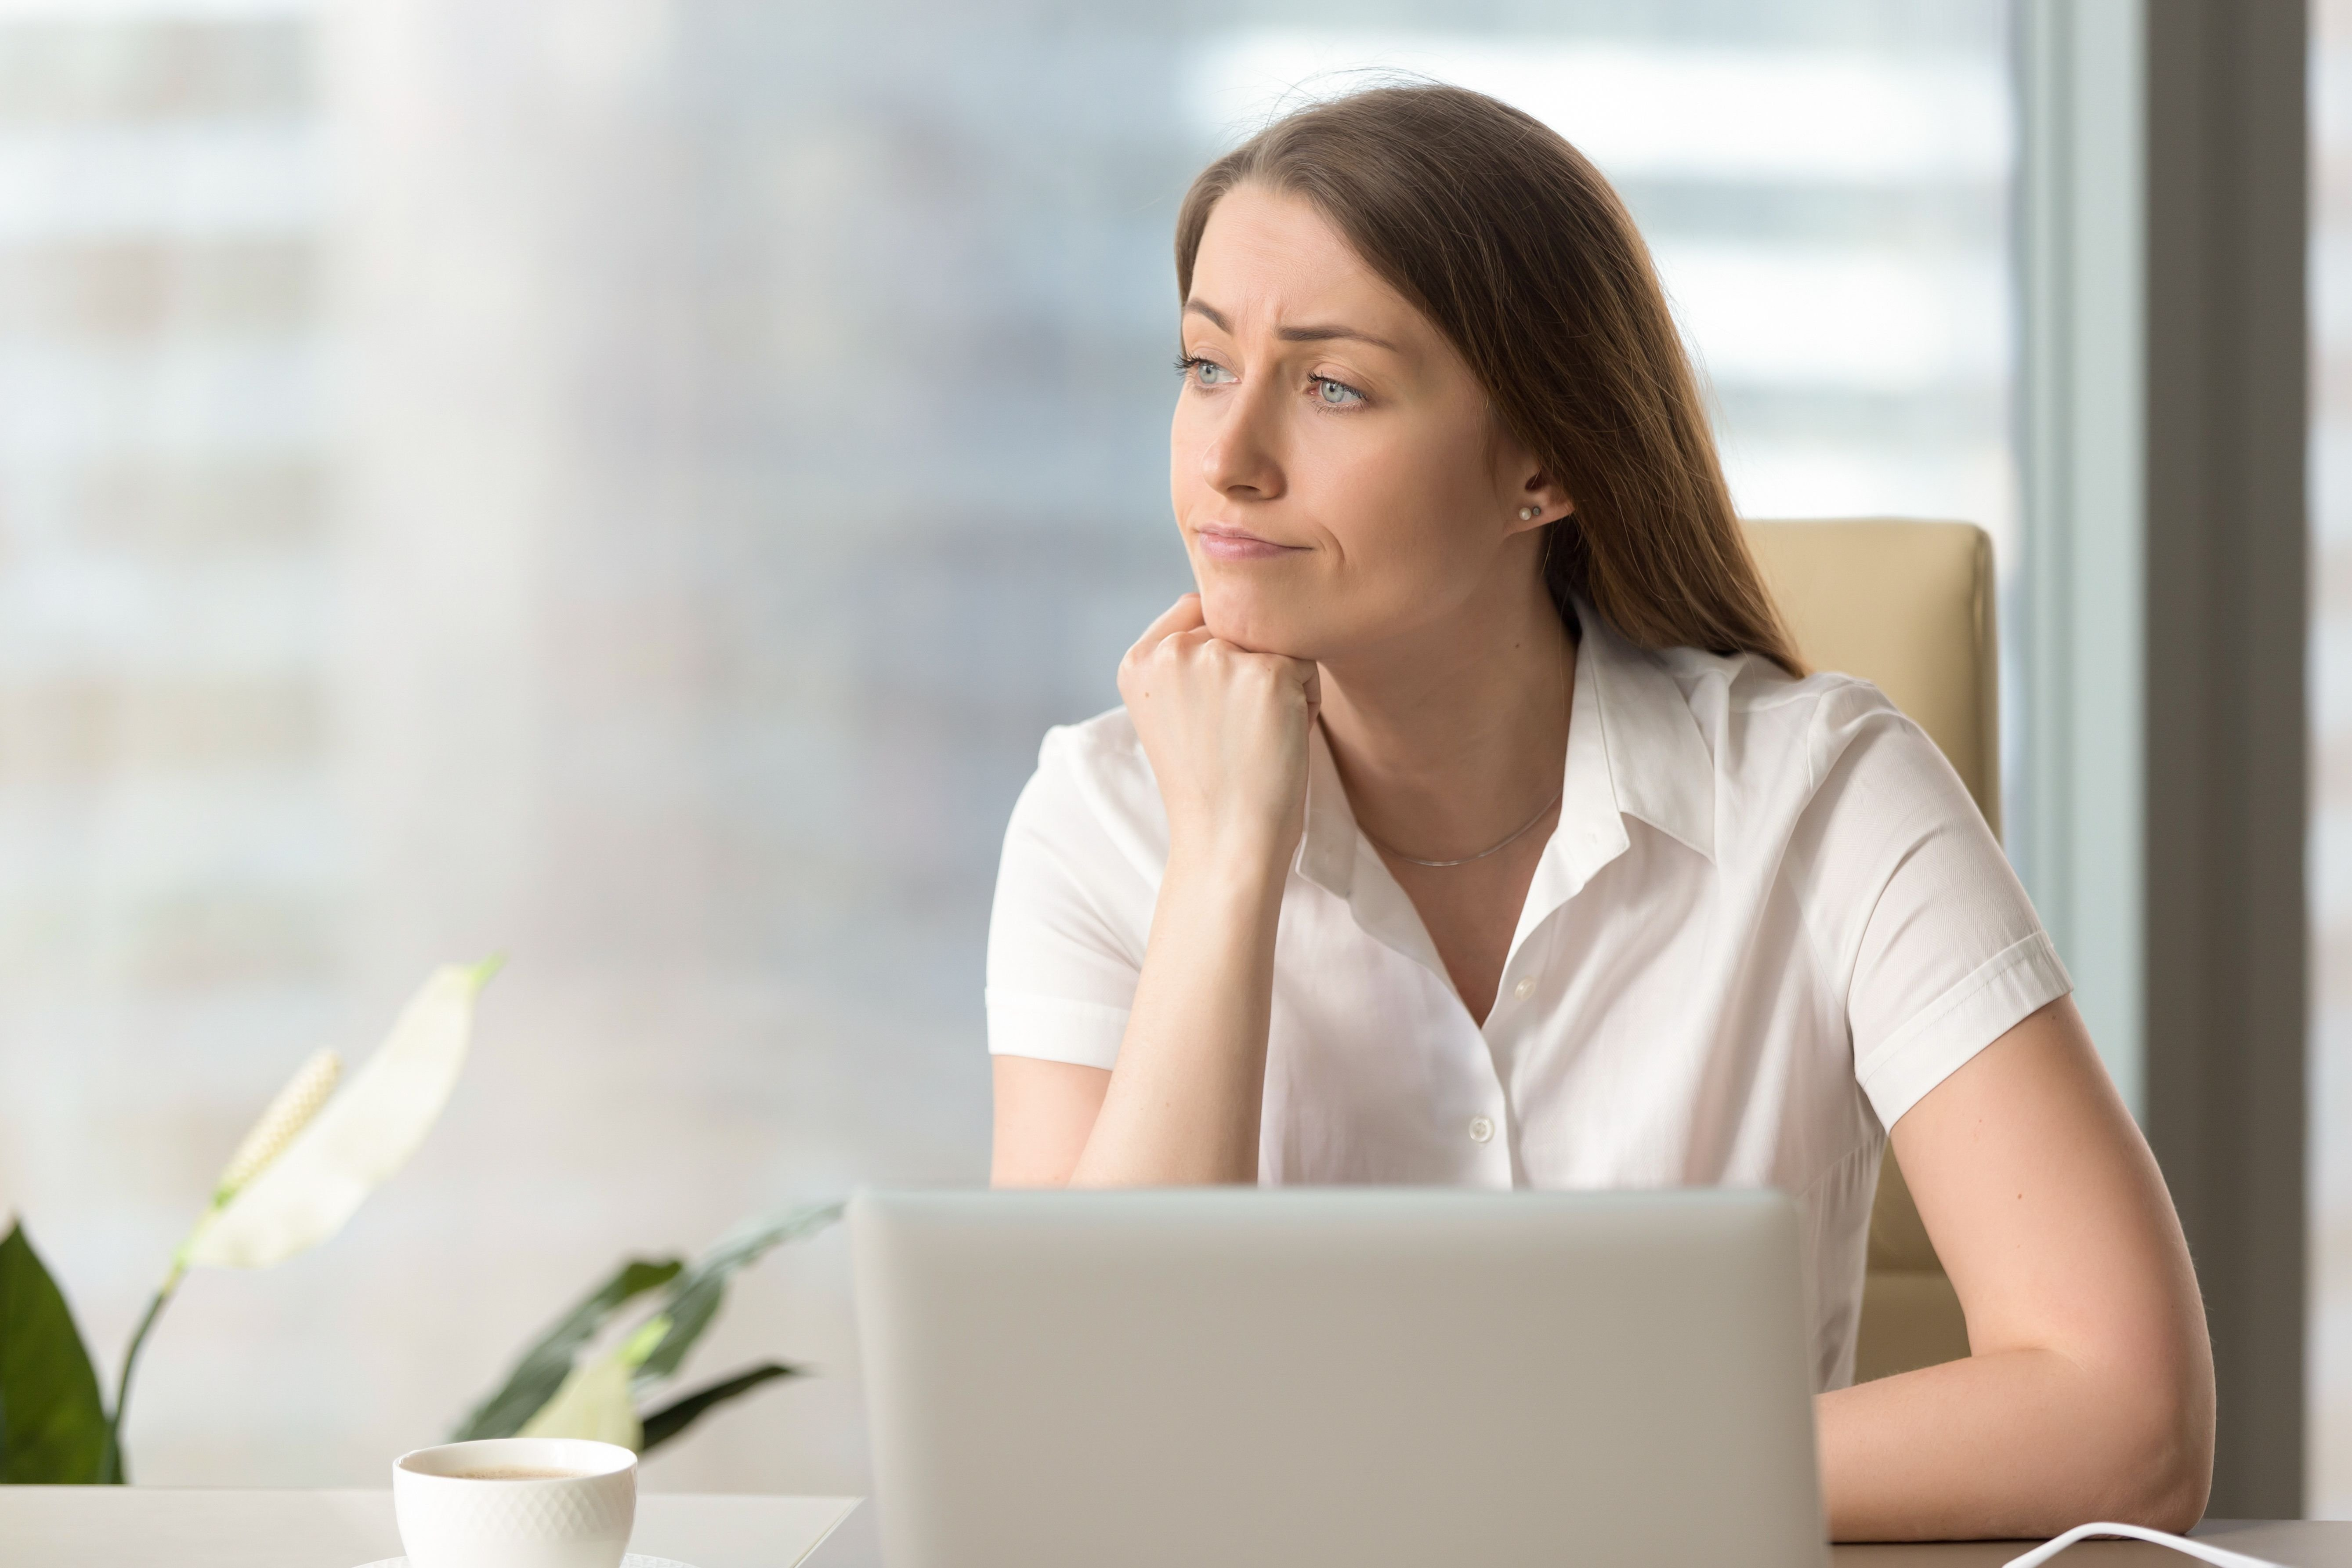 A woman looks out the window in deep thought.   Source: Shutterstock